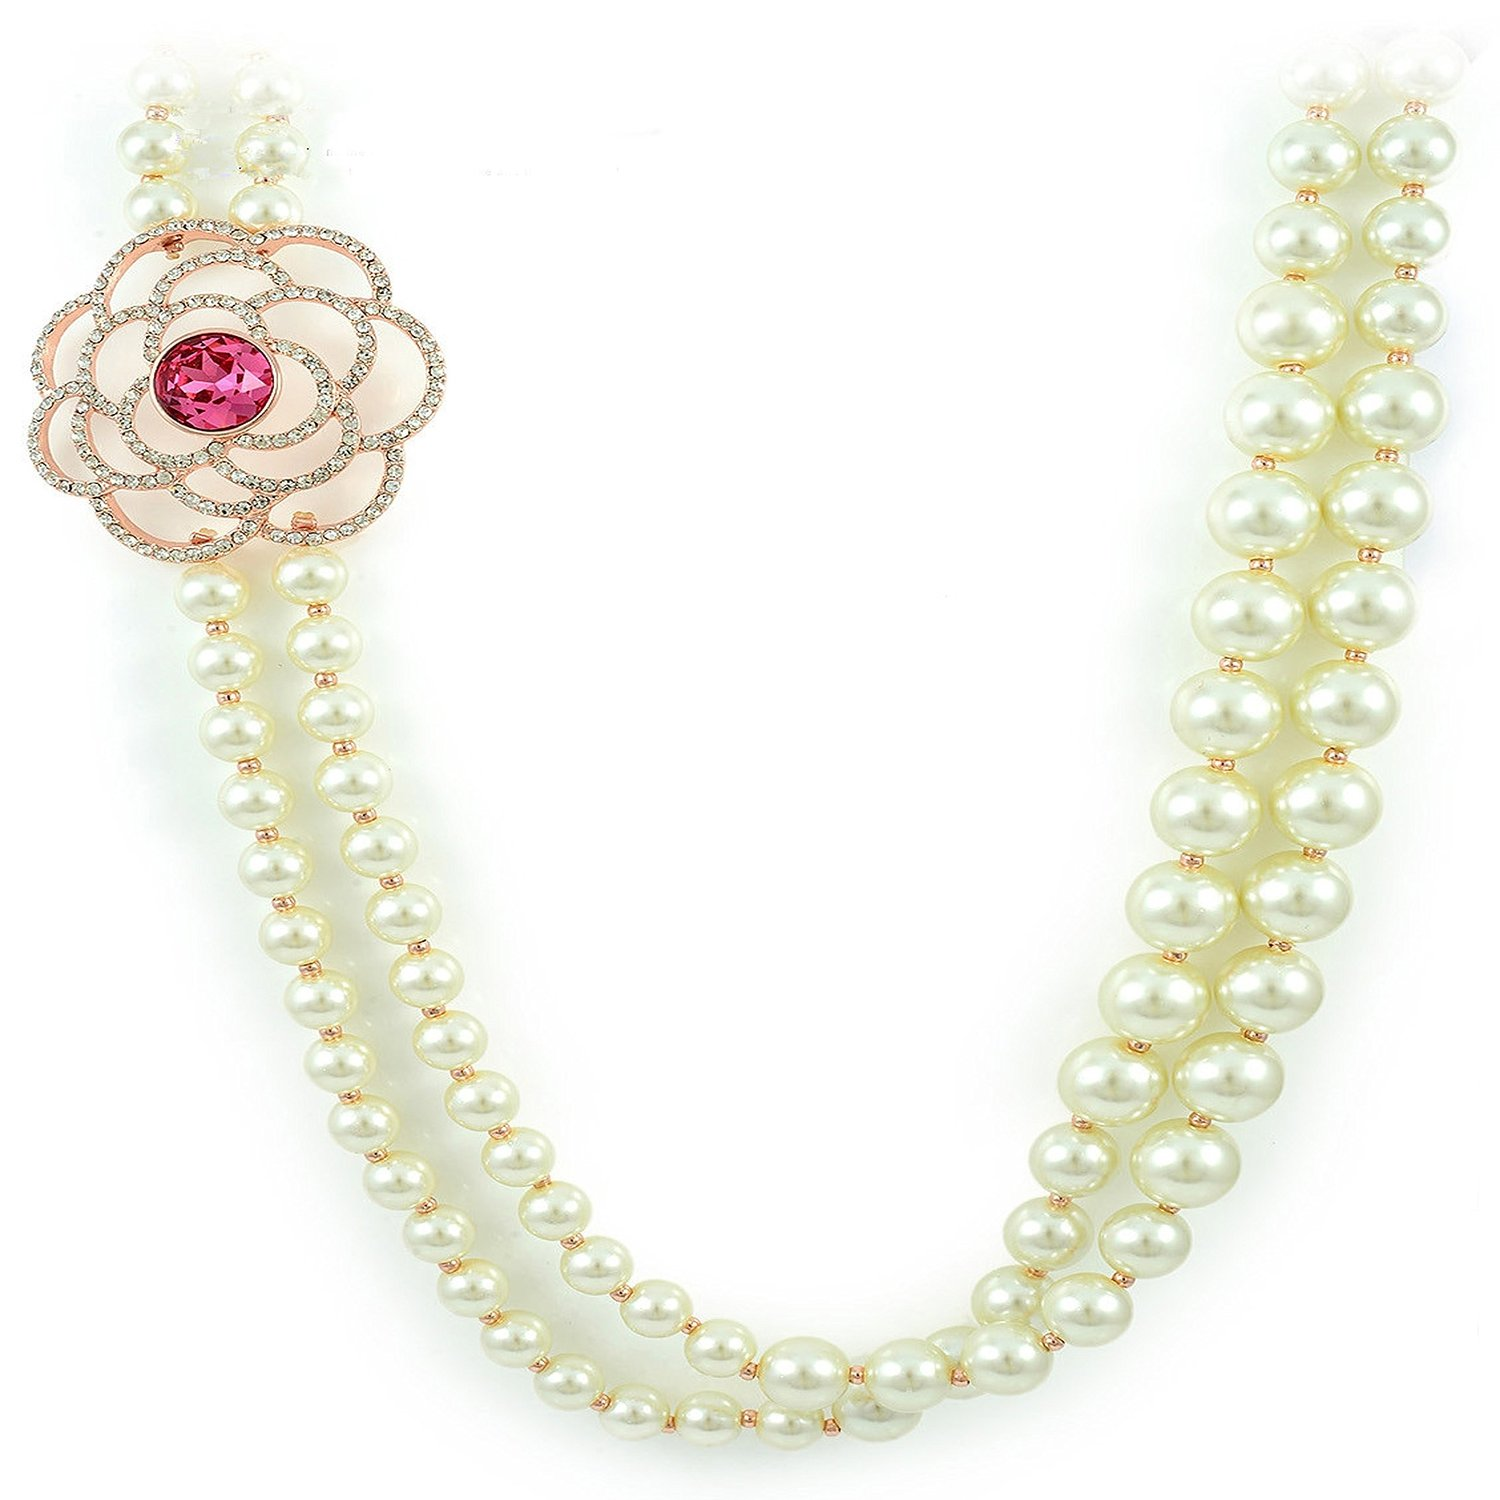 Amazon.com: viennois rhinestone cut flower with swarovski pink crystal imitation white pearl double chain 24 inches necklace: jewelry